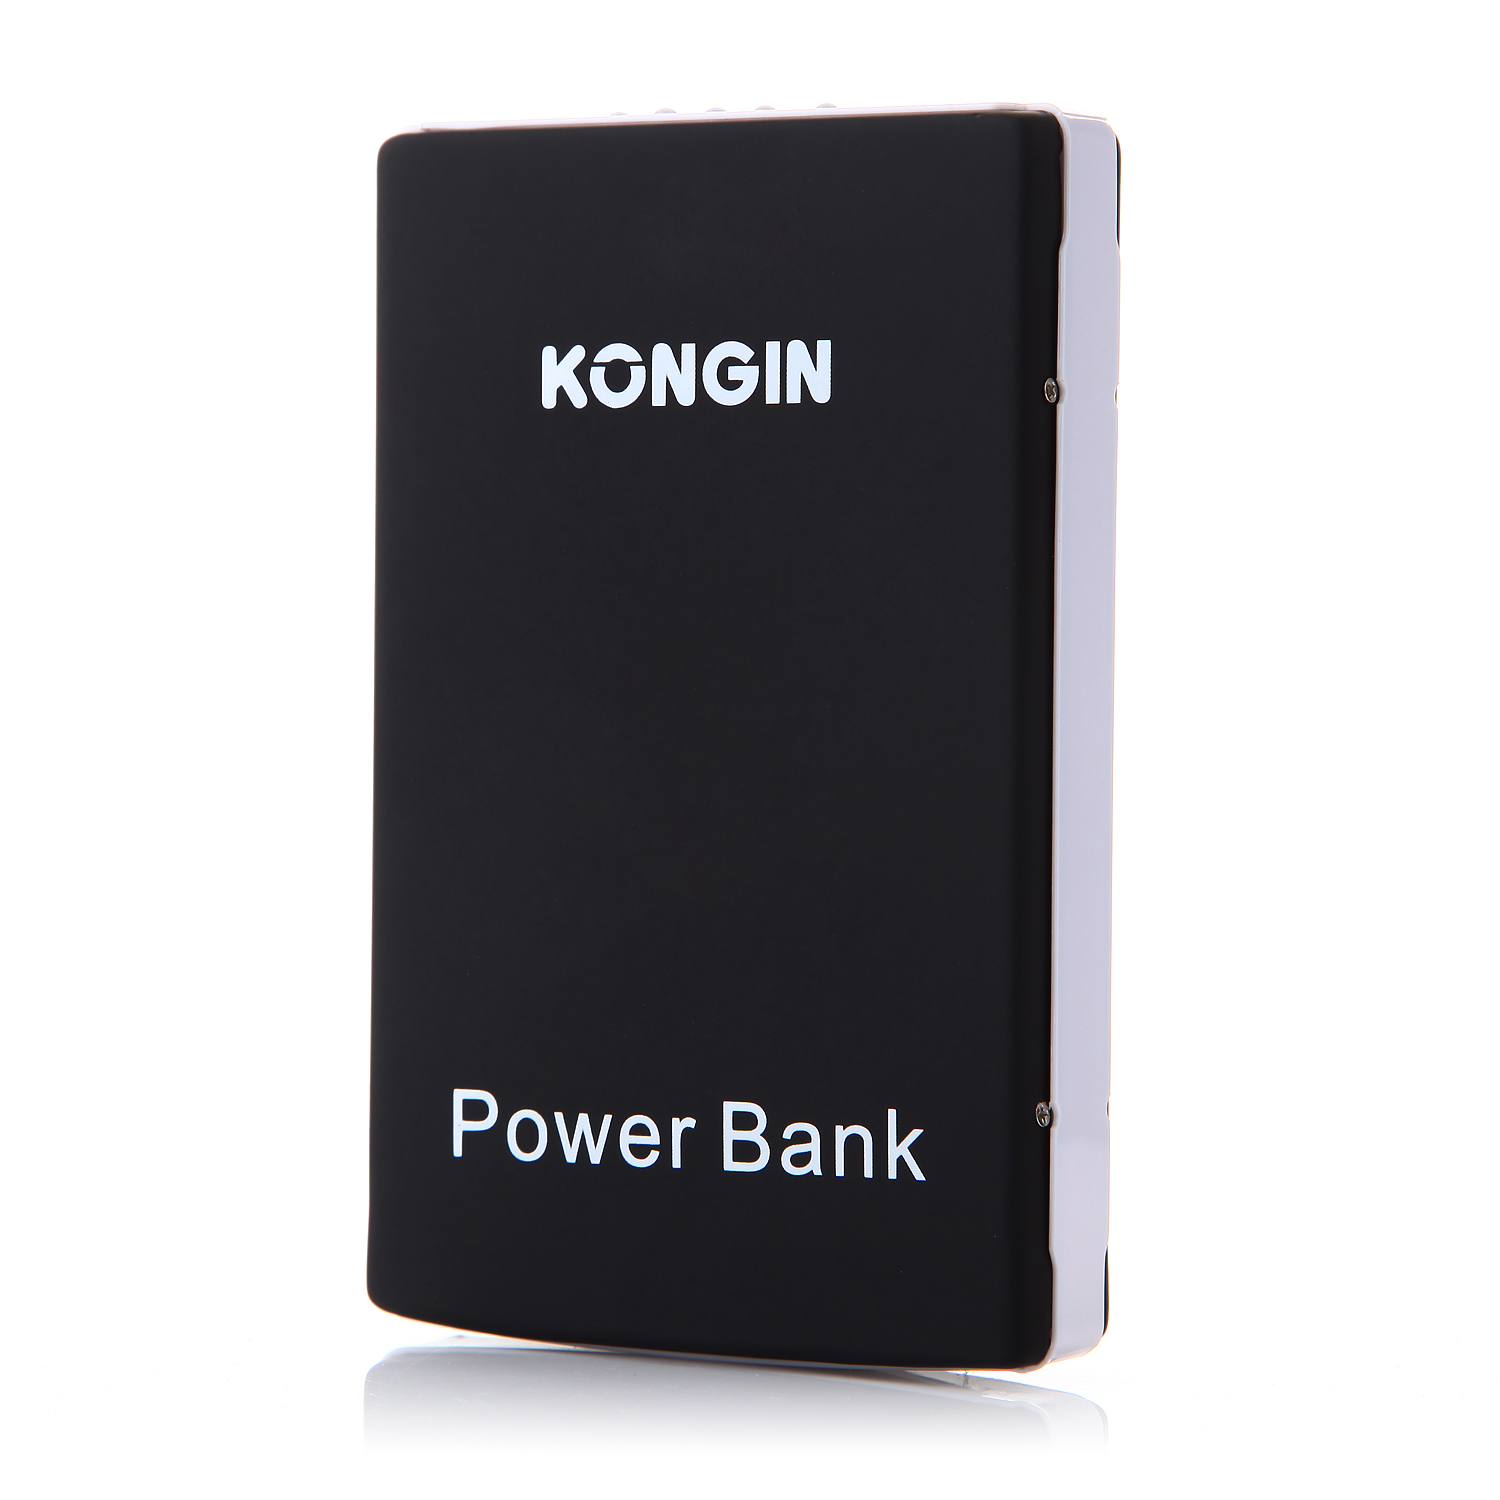 KONGIN KG-13800 Dual USB Power Bank 13800mAh for iPhone iPad Smartphone